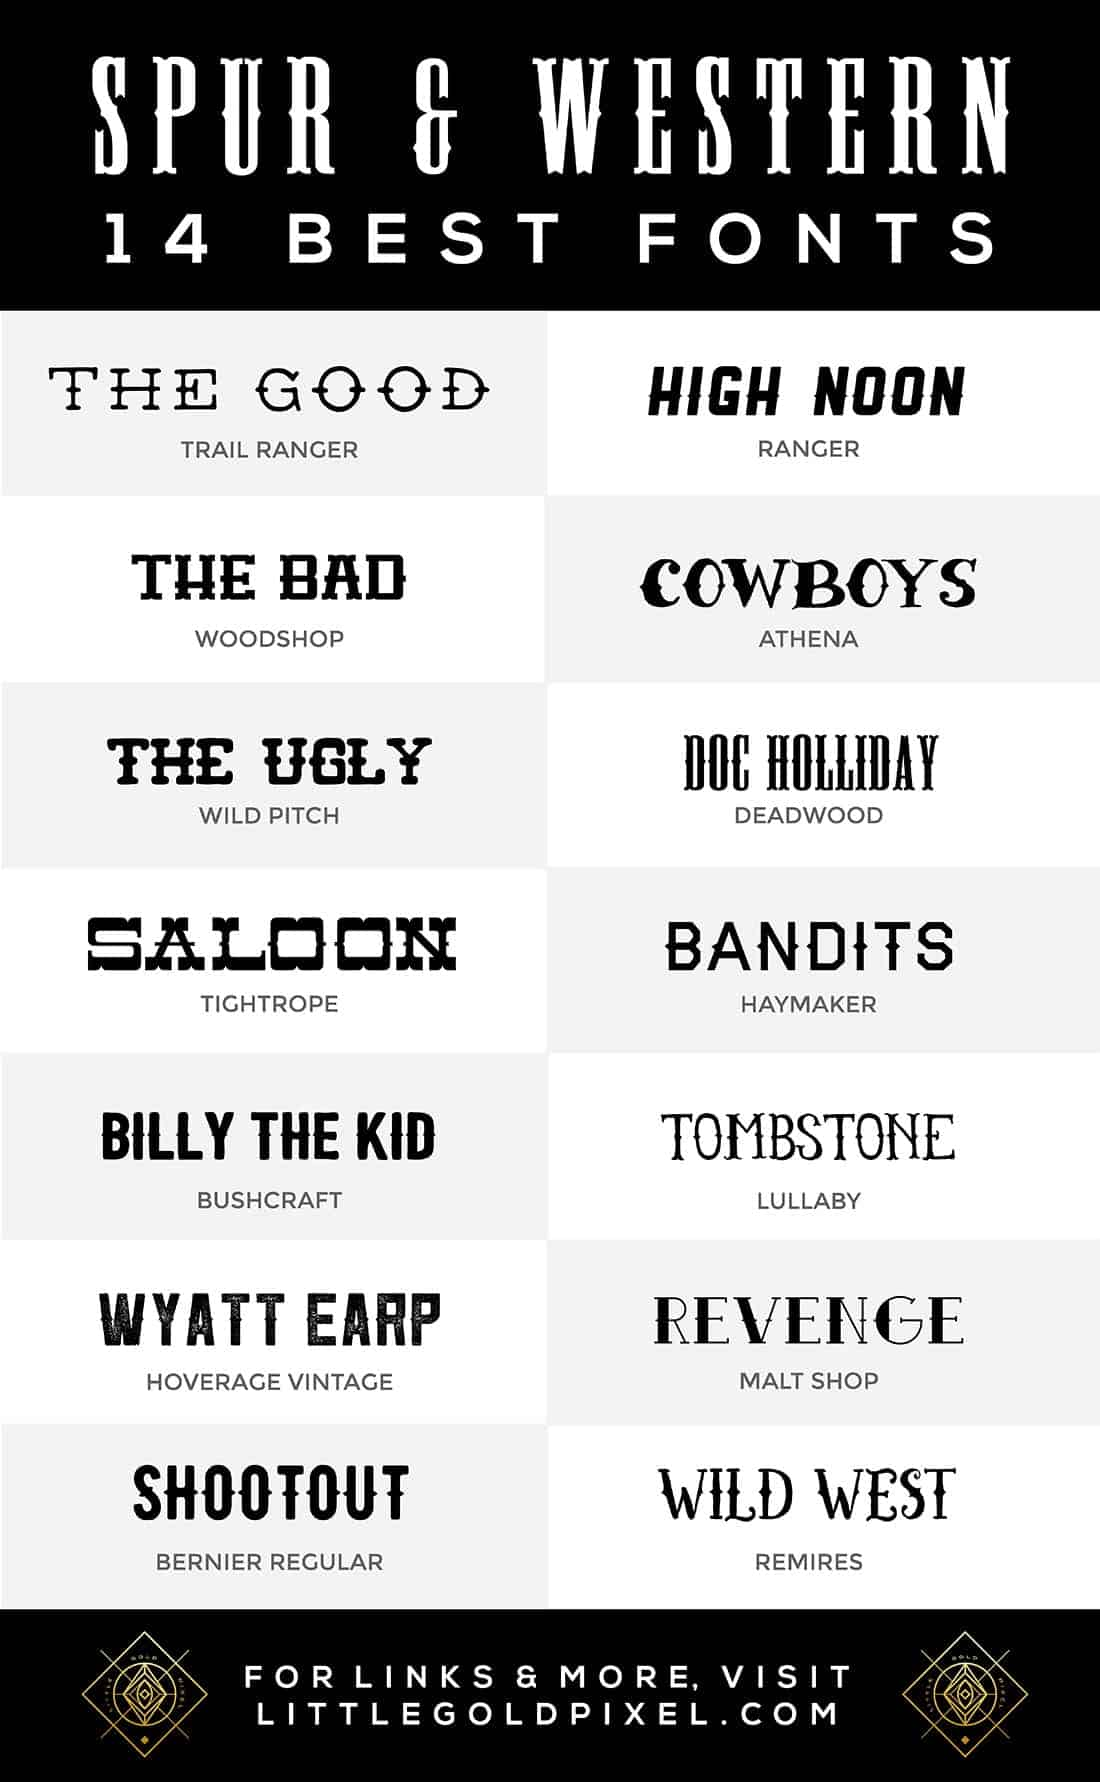 14 Best Spur & Western Fonts for Your Design Projects • Little Gold Pixel